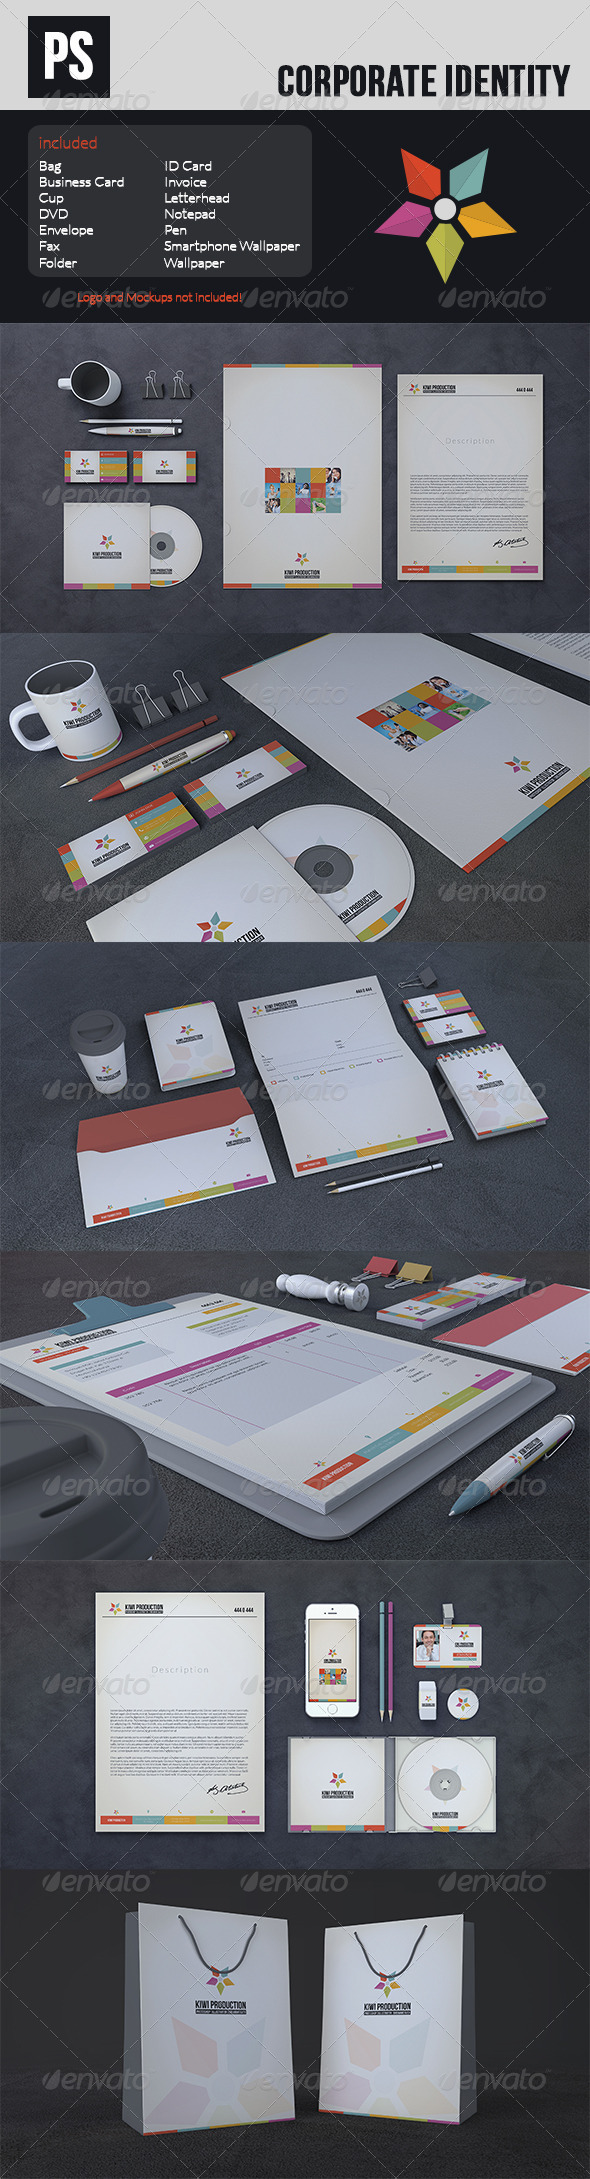 GraphicRiver Corporate Identity 6392276